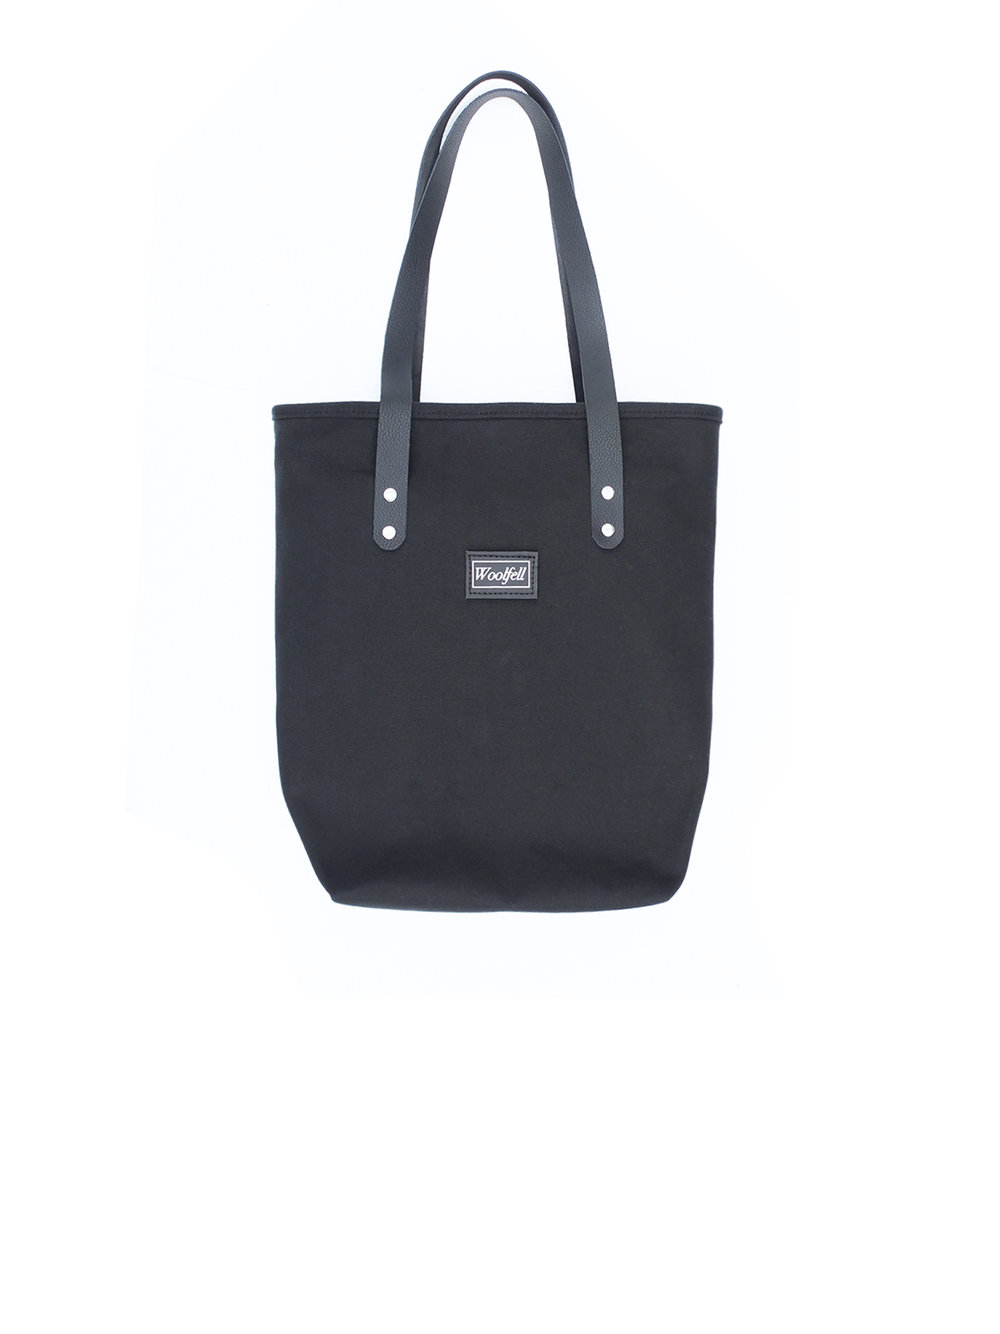 Tote bag - more colors available60.00$